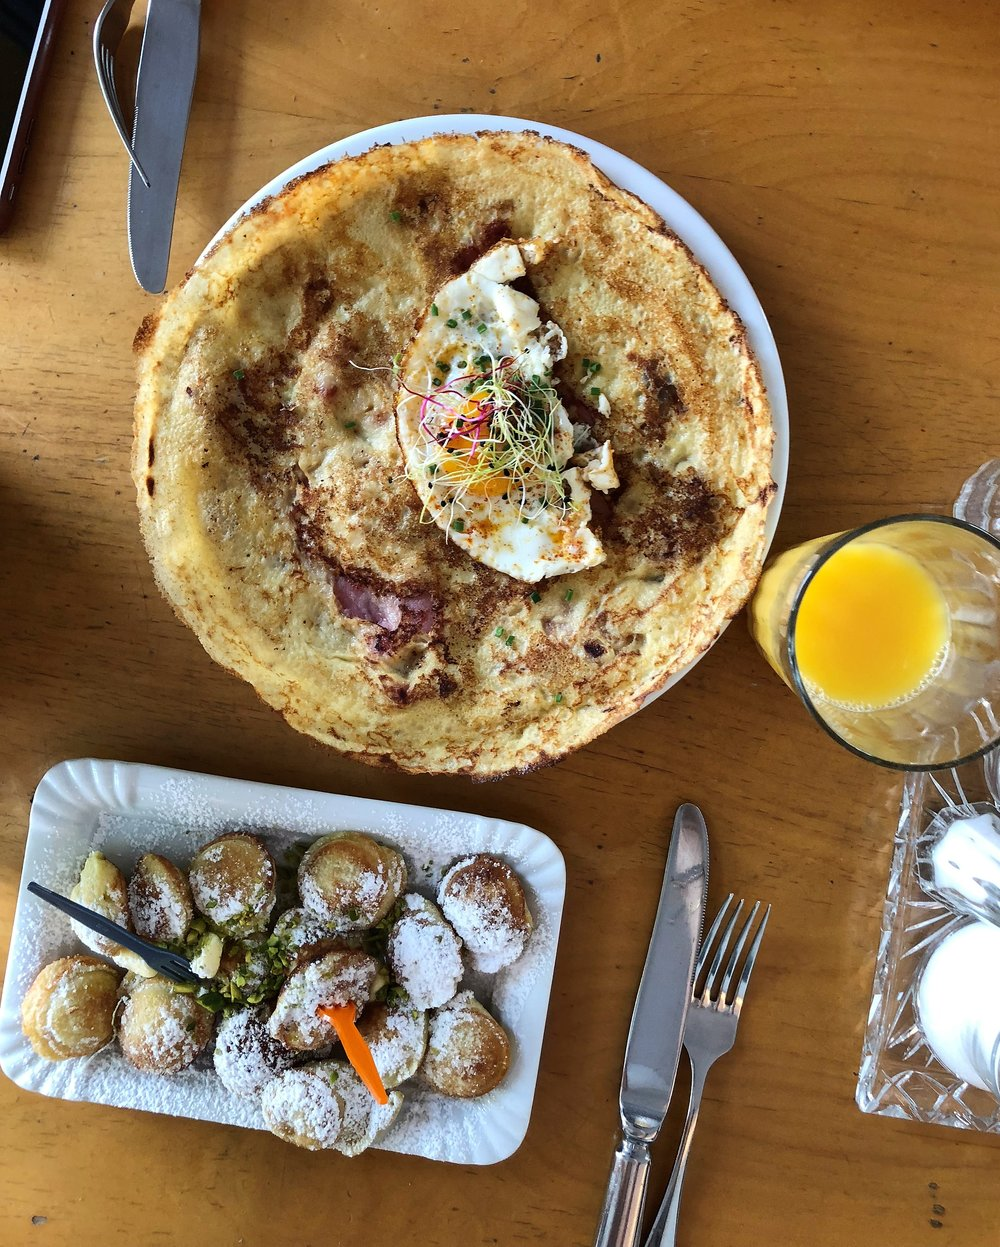 In Dan's research for brunch places, he found  Gasthaus Zum Gluten Gluck . I really liked the minimal cool decor complete with a sit in counter. The top dish is Dan's: pancake with bacon, onion and a fried egg. I went with the pufferli with butter and sugar (mini swiss pancakes).